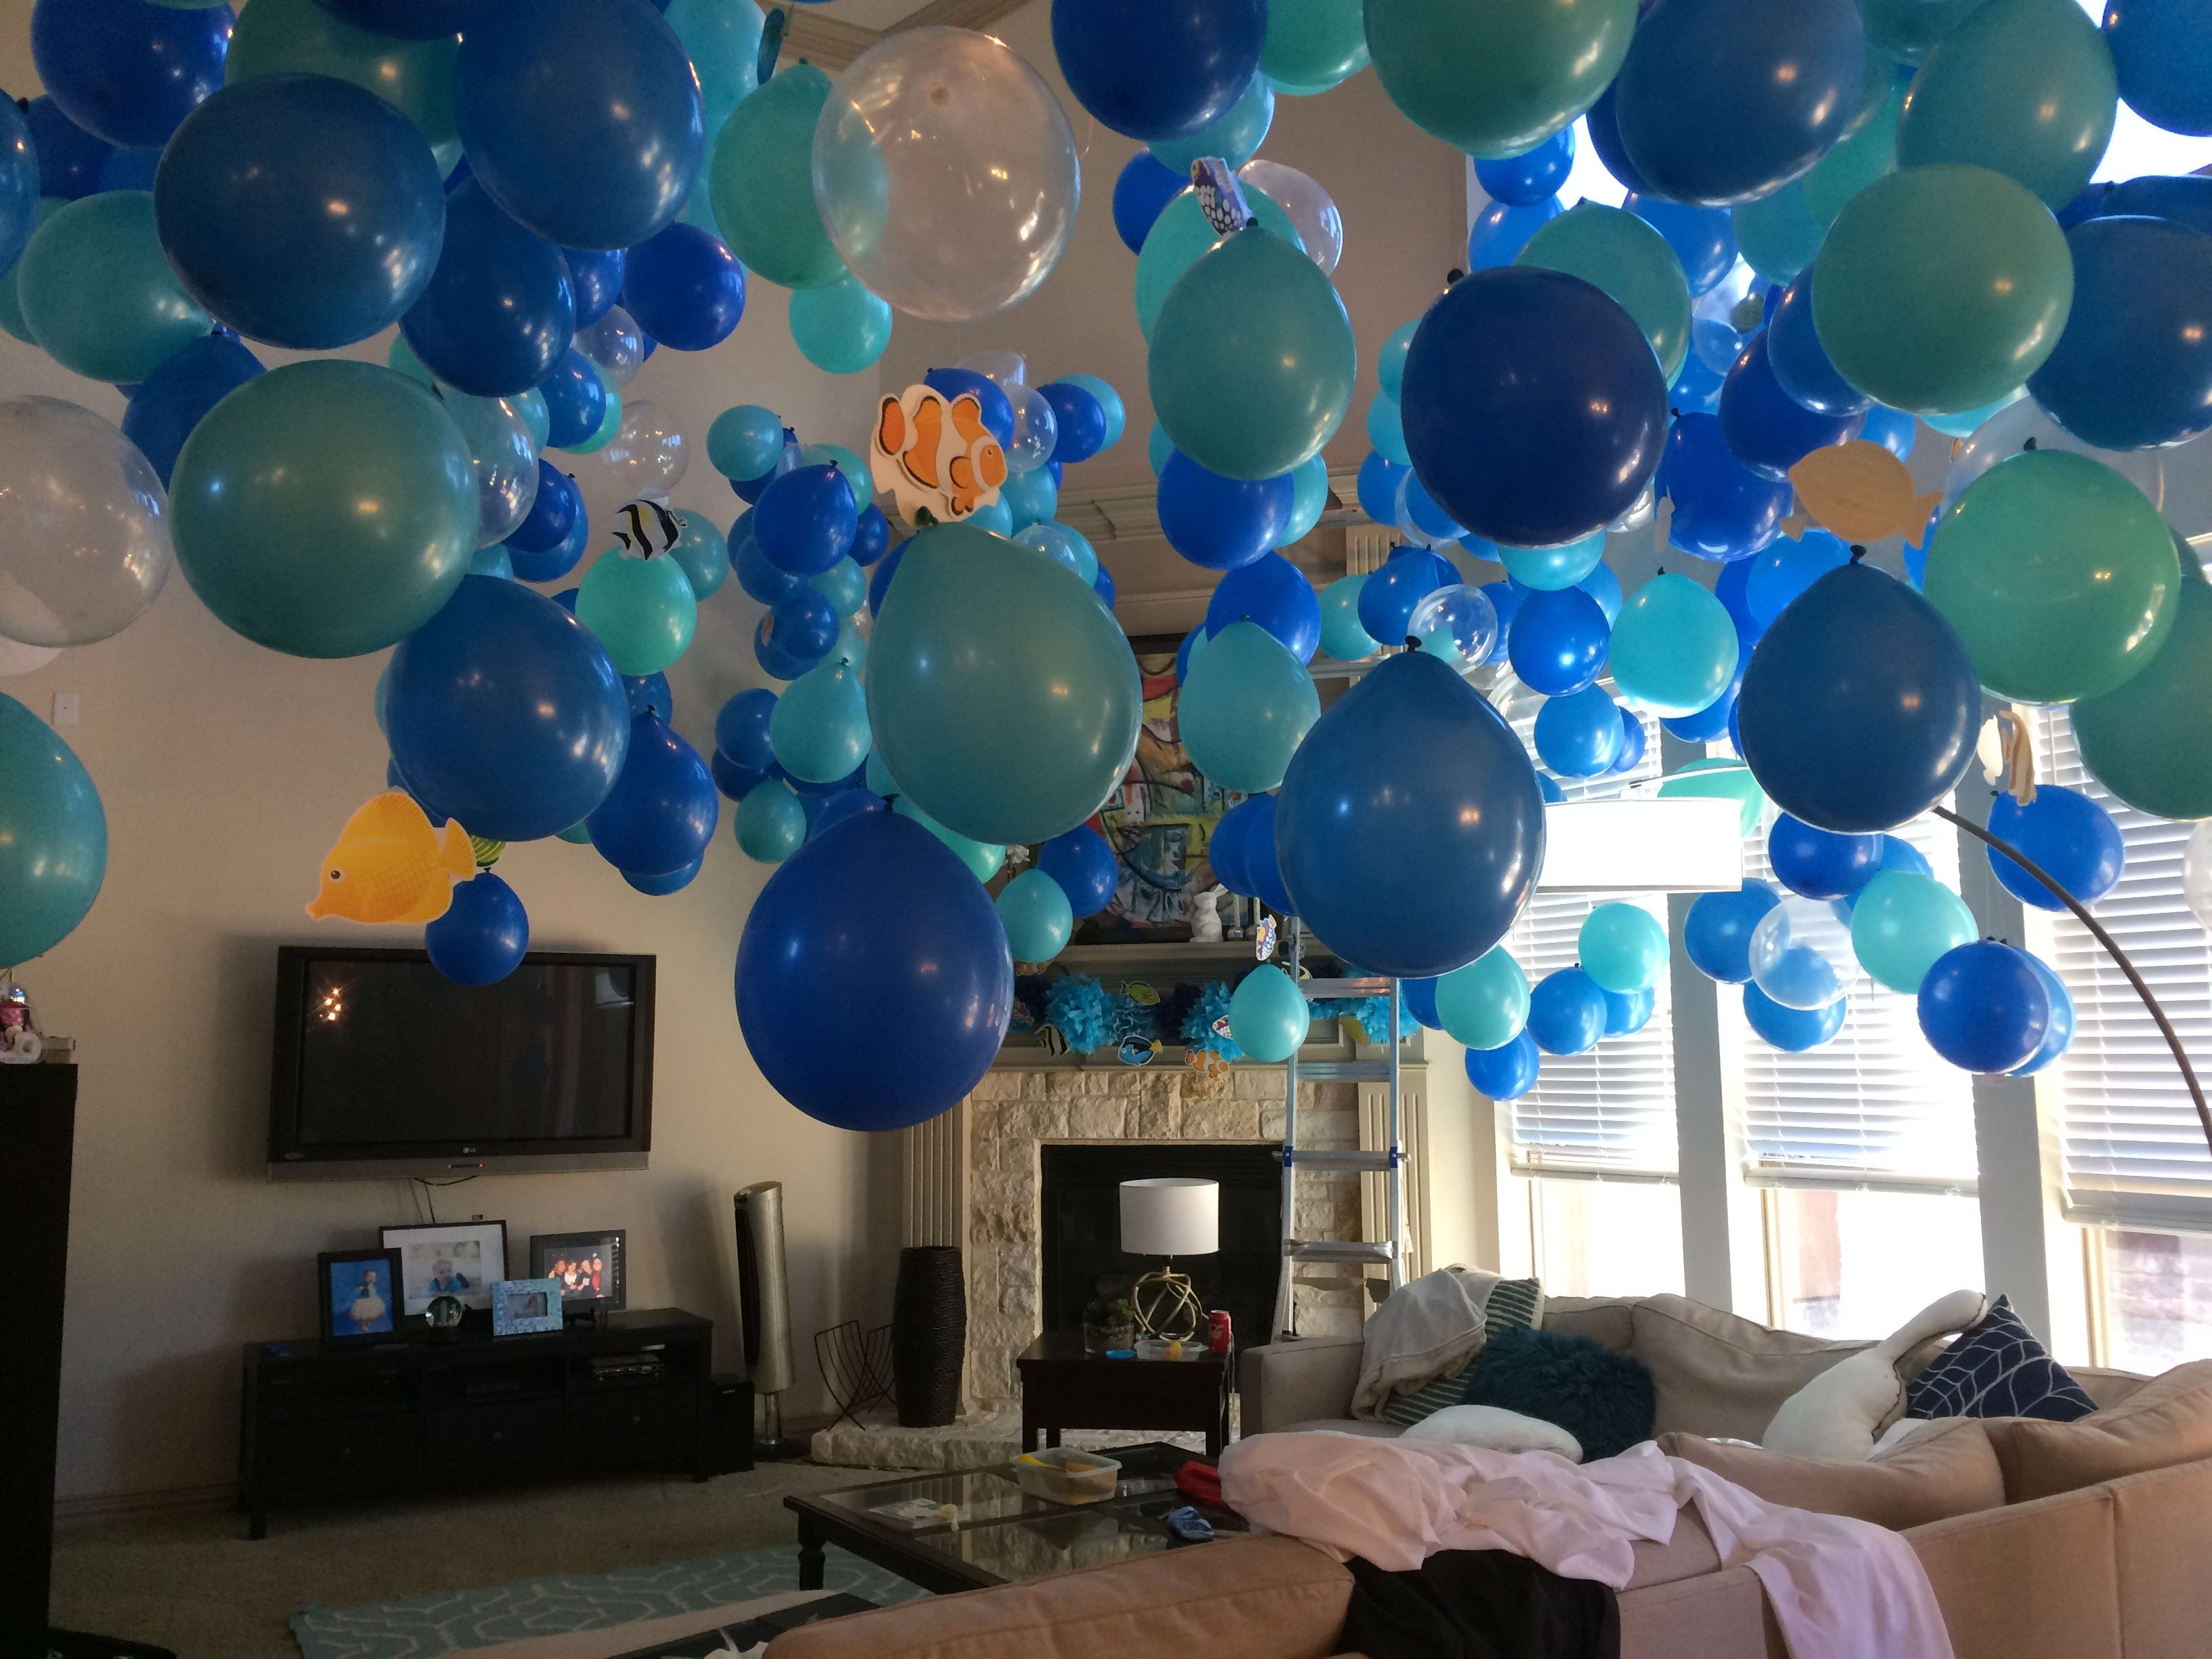 Ocean Party Decorations Balloons Hanging From The Ceiling Party